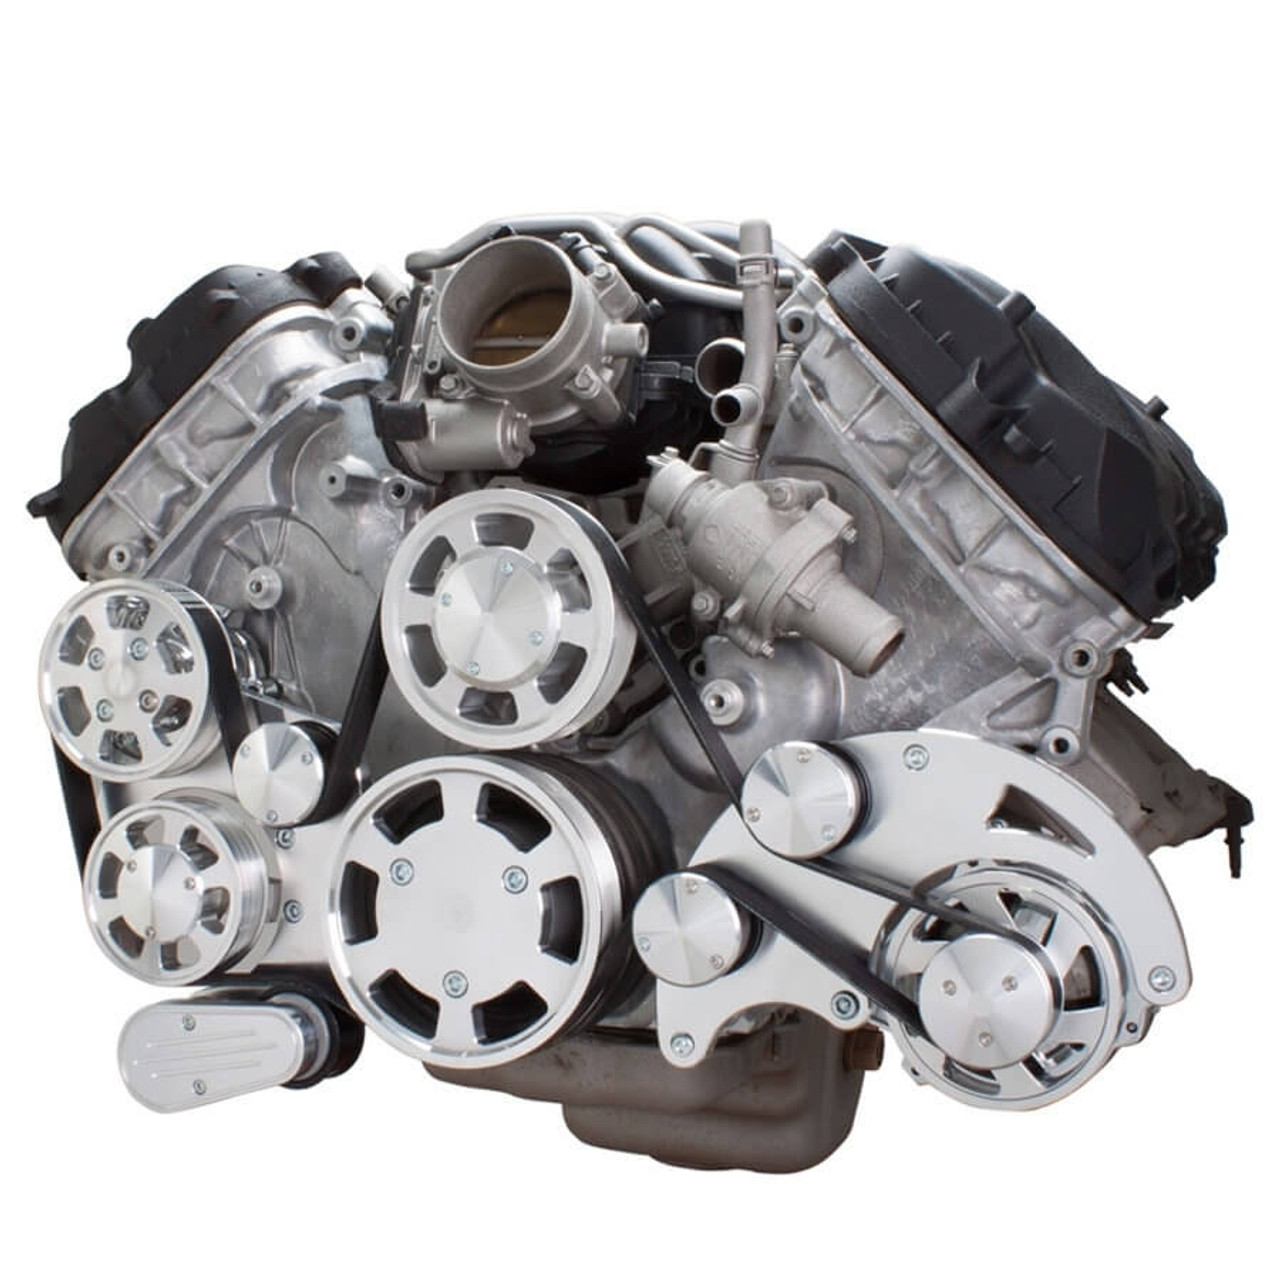 serpentine system for ford coyote 5 0 alternator \u0026 power steering all inclusive 1986 Ford Alternator Wiring